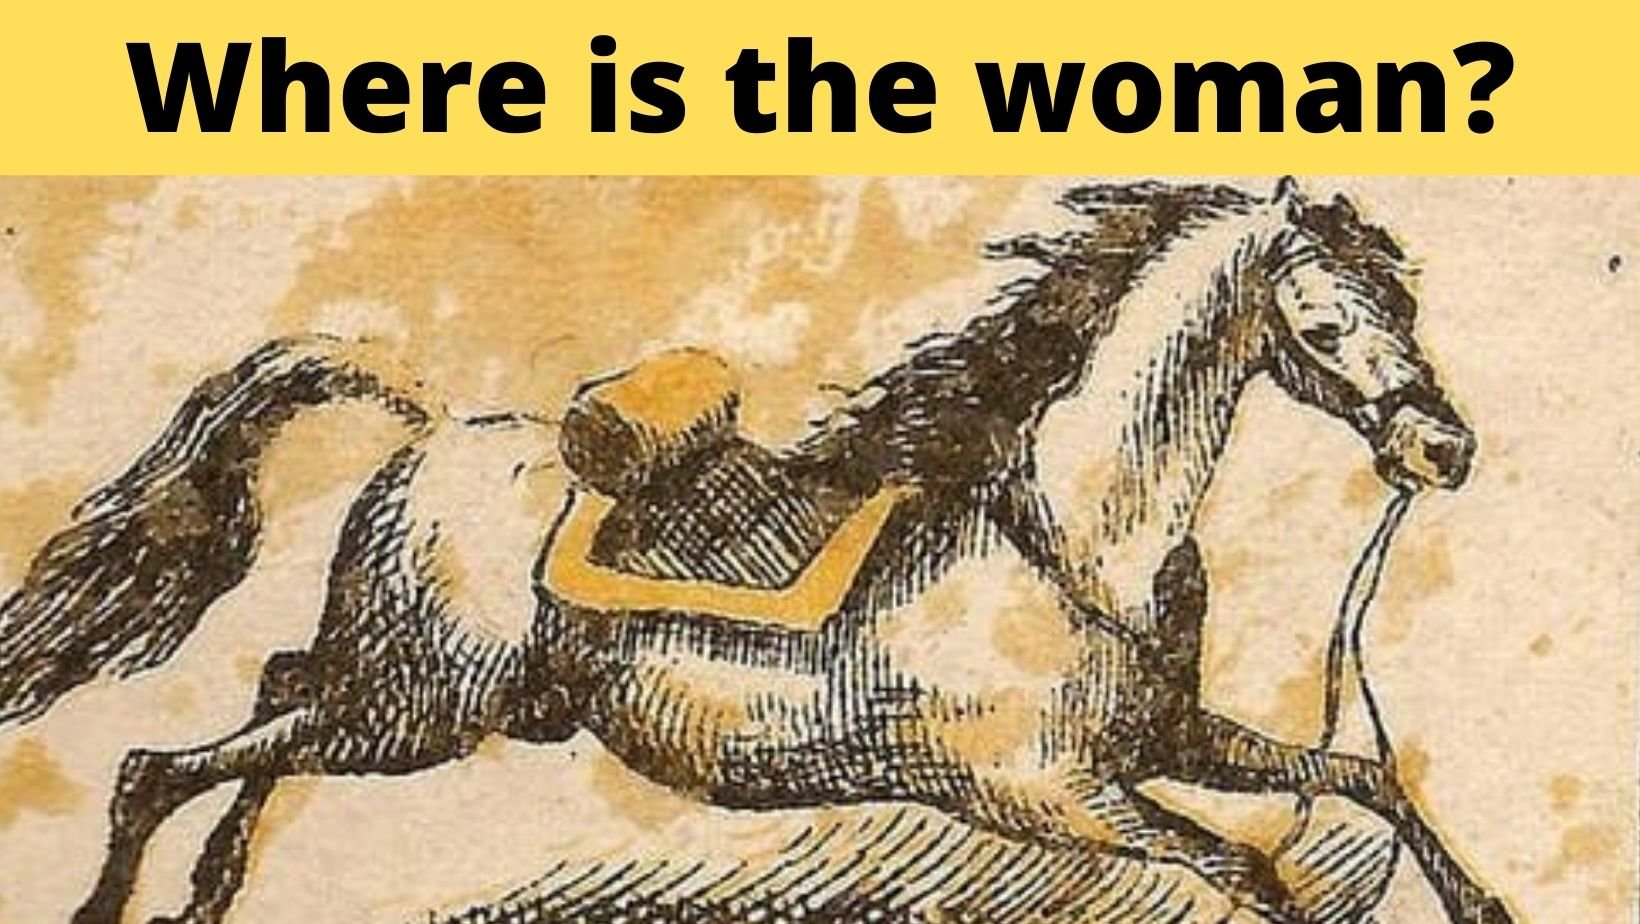 small joys thumbnail 2.jpg?resize=1200,630 - Optical Illusion: The Lady Rider Fell Off The Horse! But Where Is She?!